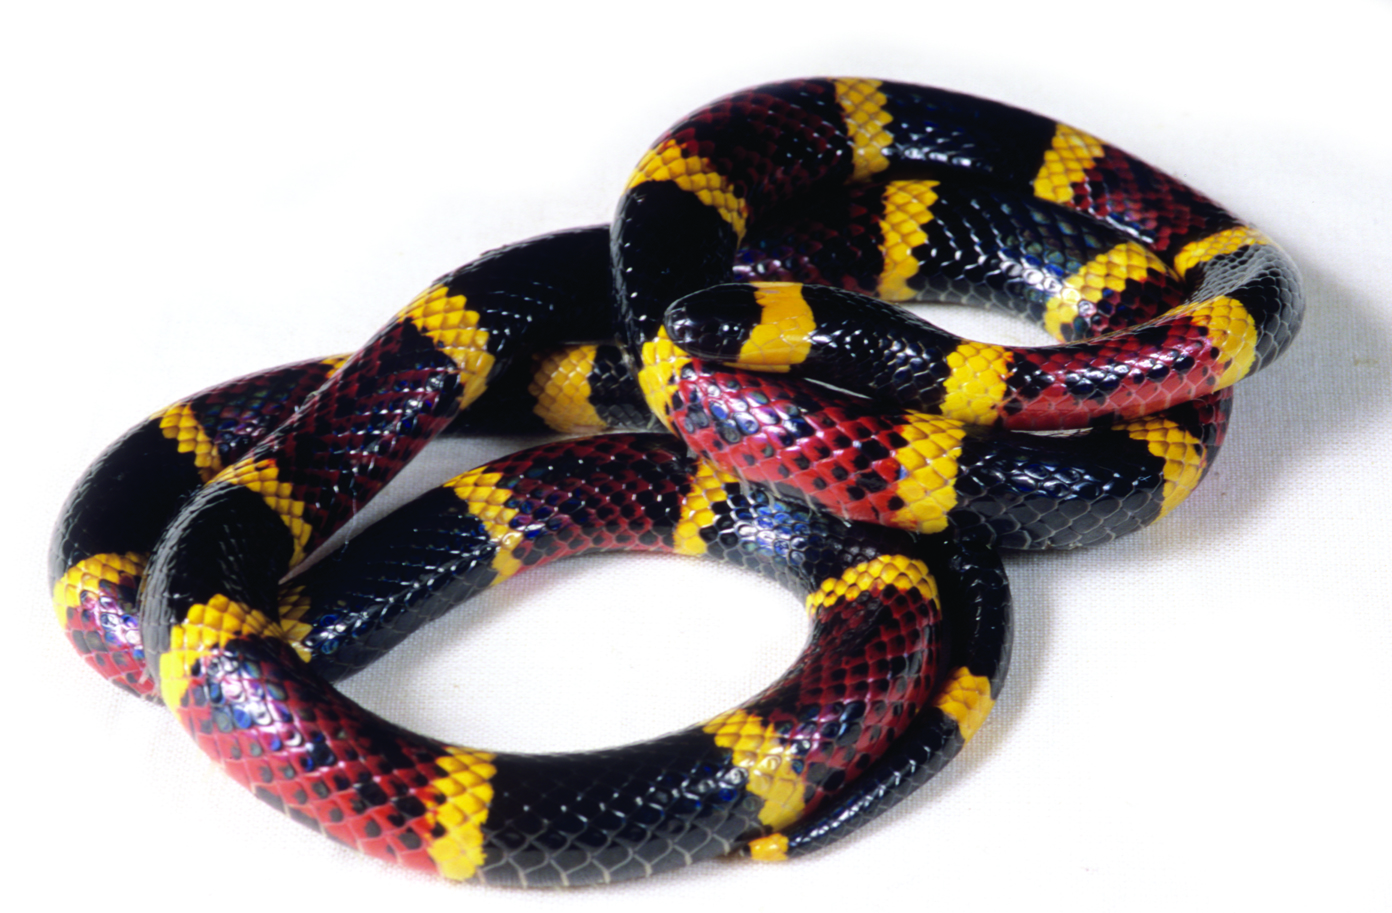 Coral Snakes Colors Bites Farts Facts Live Science